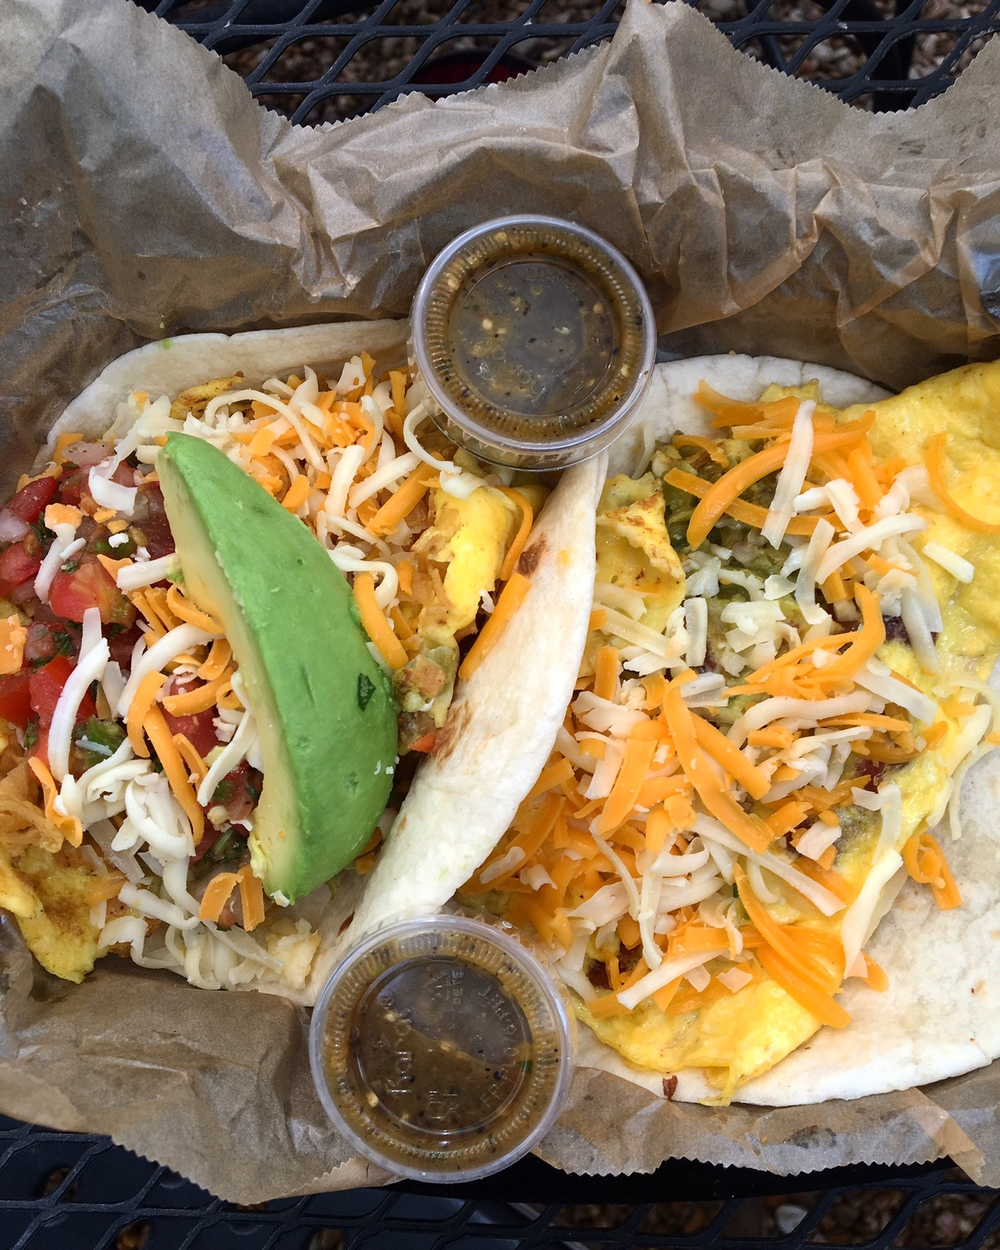 THE MONK SPECIAL & THE MIGAS CUDDLED TOGETHER WAITING FOR SALSA VERDE.